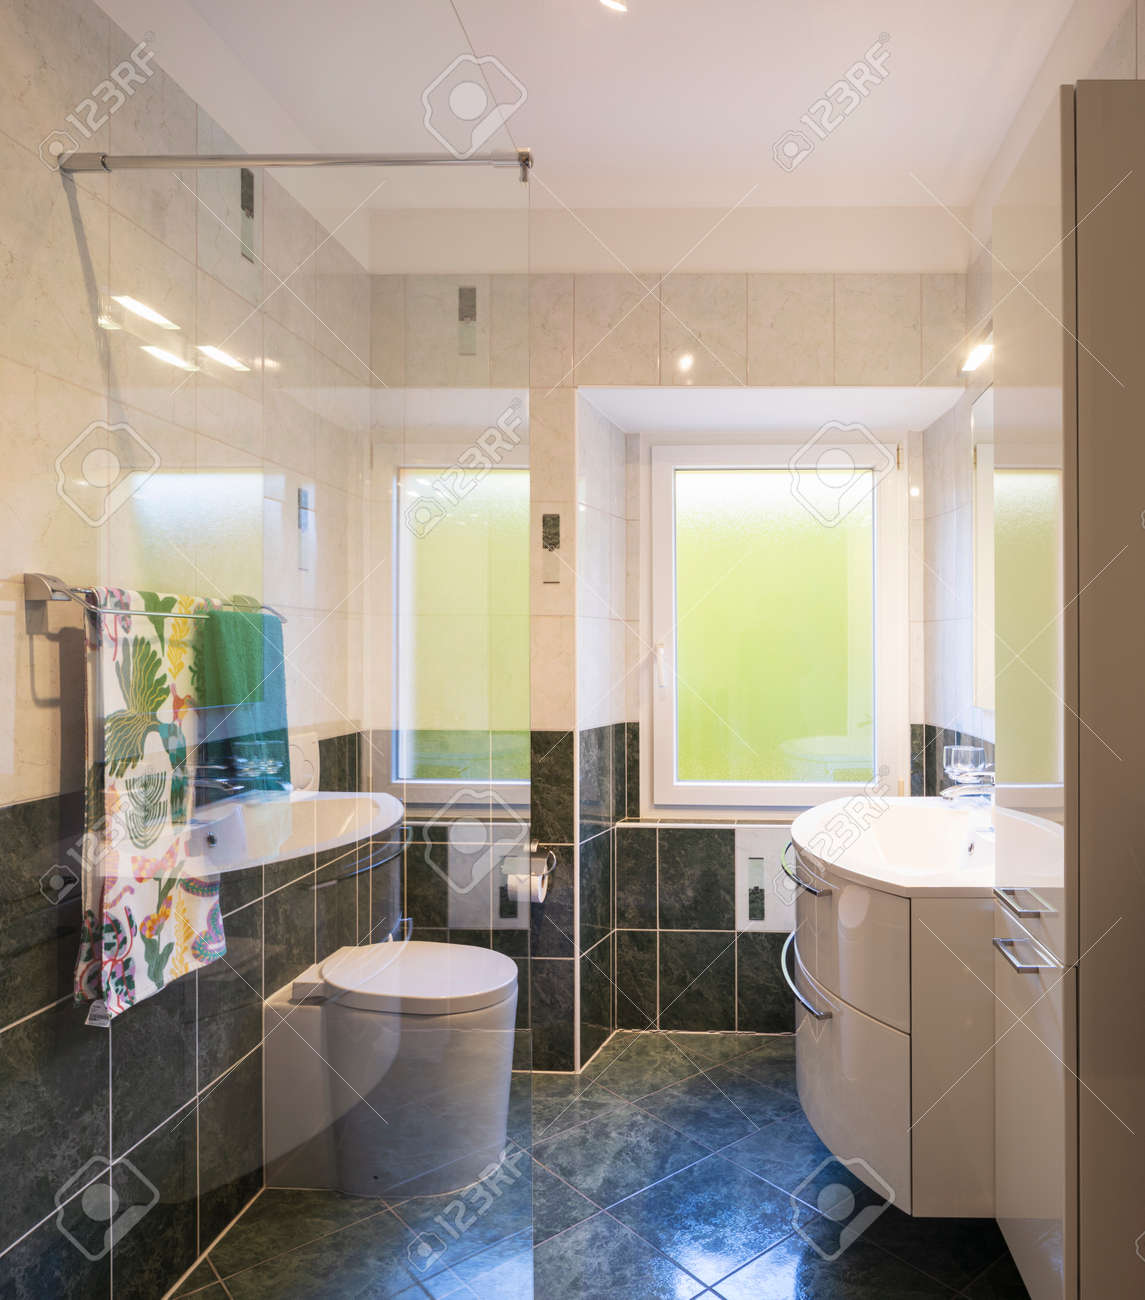 Bathroom with glass shower, tiles green and white. Large bright windows. Nobody inside. - 163079136